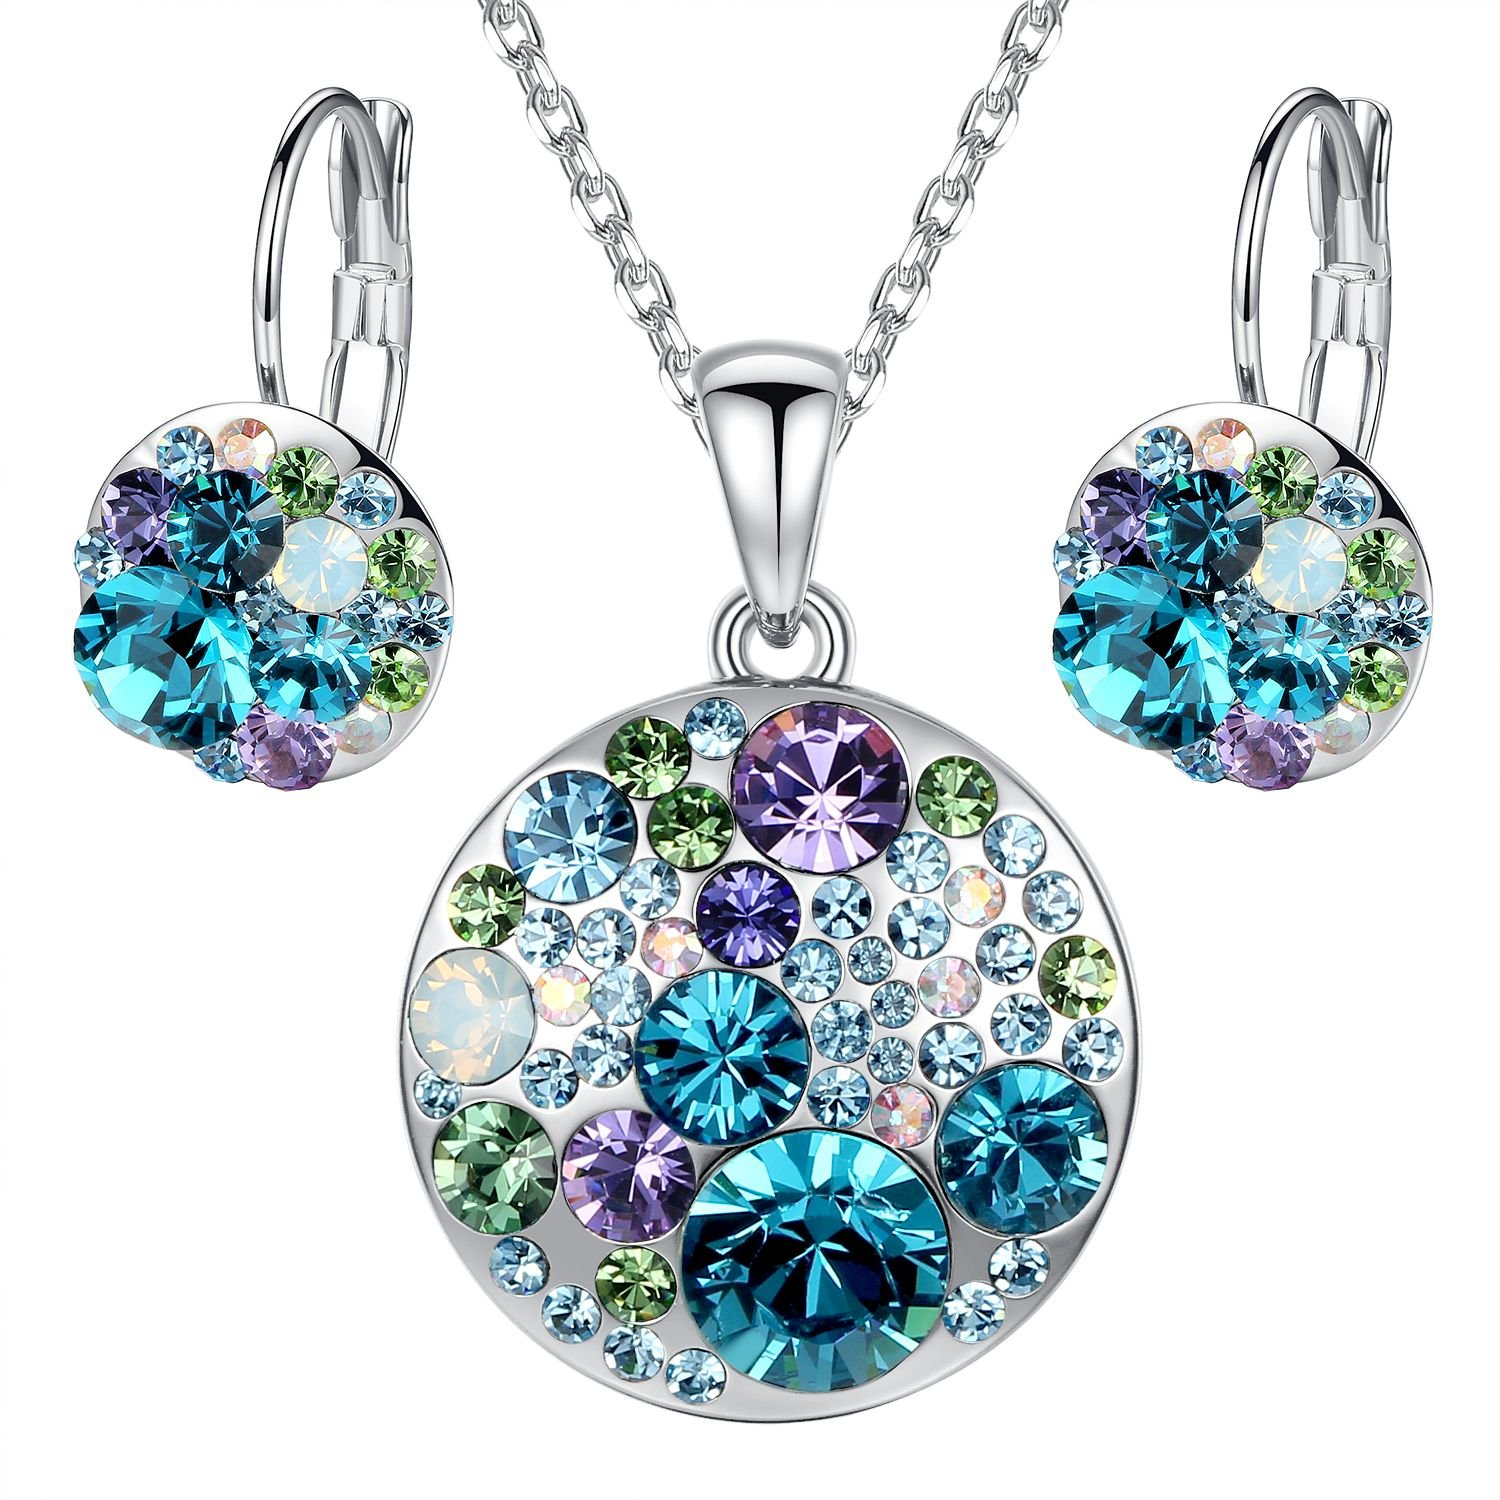 Leafael Ocean Bubble Women's Jewelry Set Made with Swarovski Crystals Light Sapphire Blue Green Purple Costume Fashion Pendant Necklace Earring Set, Silver Tone, 18'' + 2'', Gifts for Women